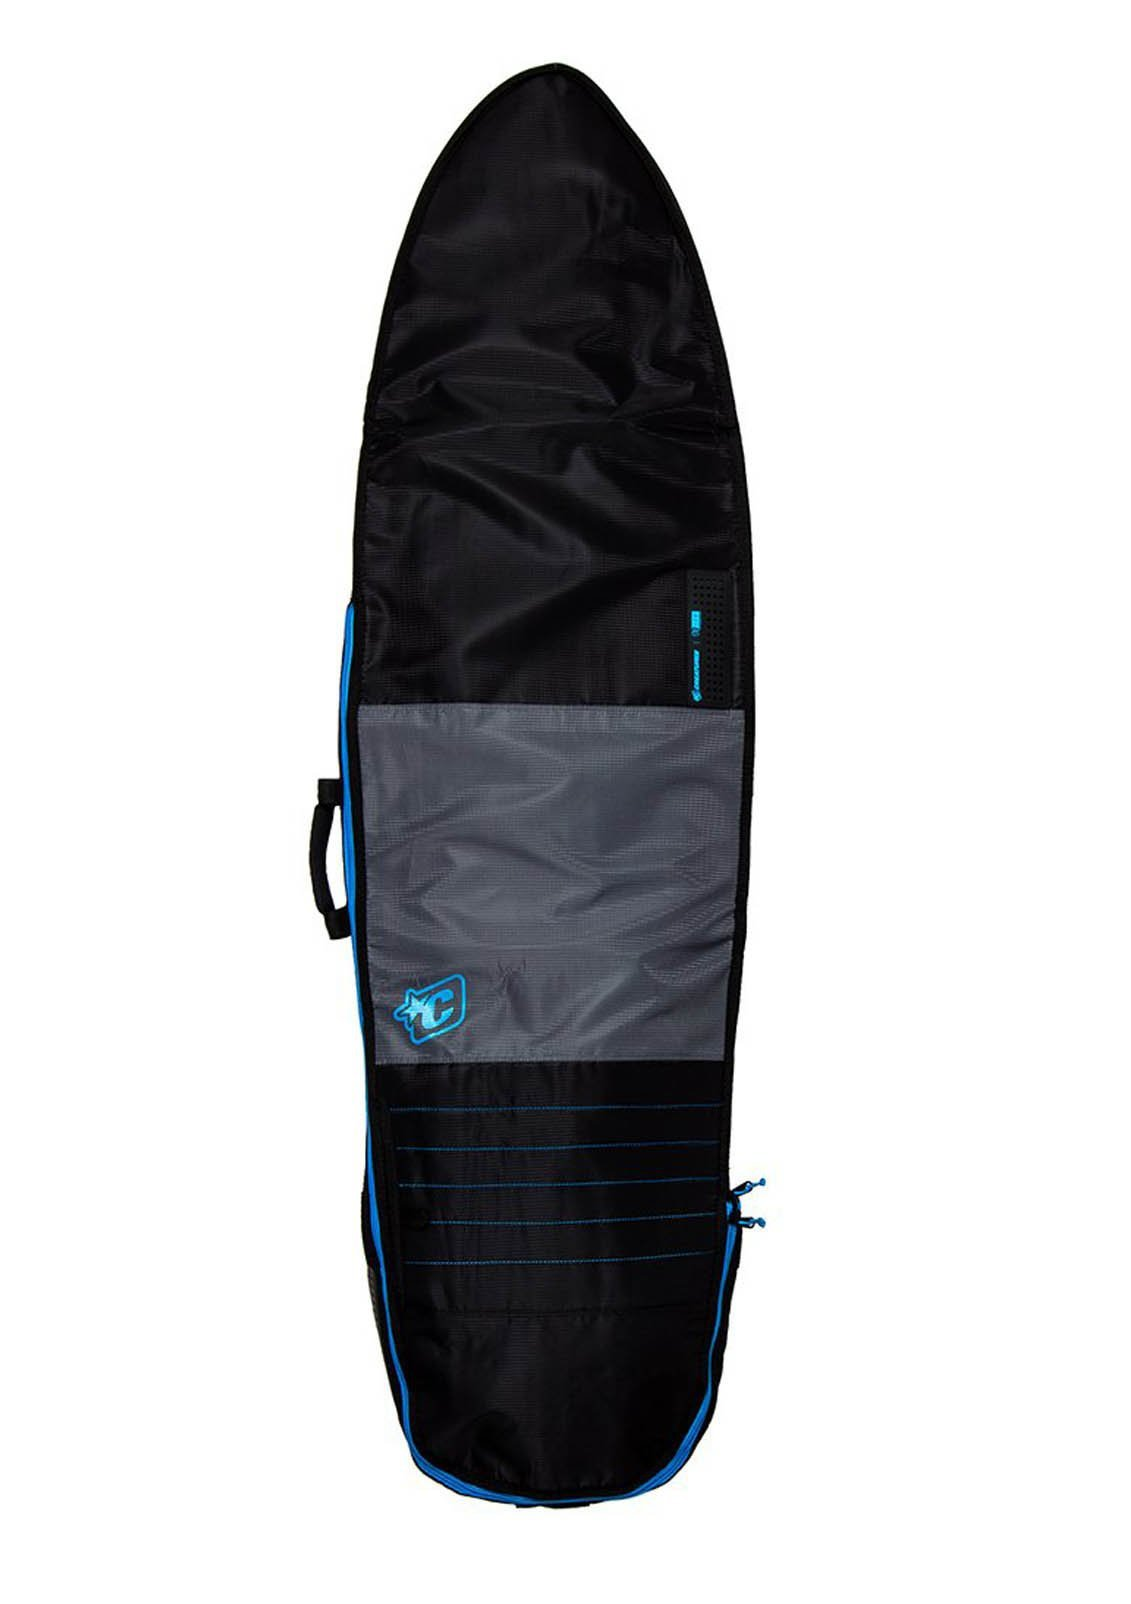 Creatures Of Leisure Fish Day Use Surfboard Board Bag